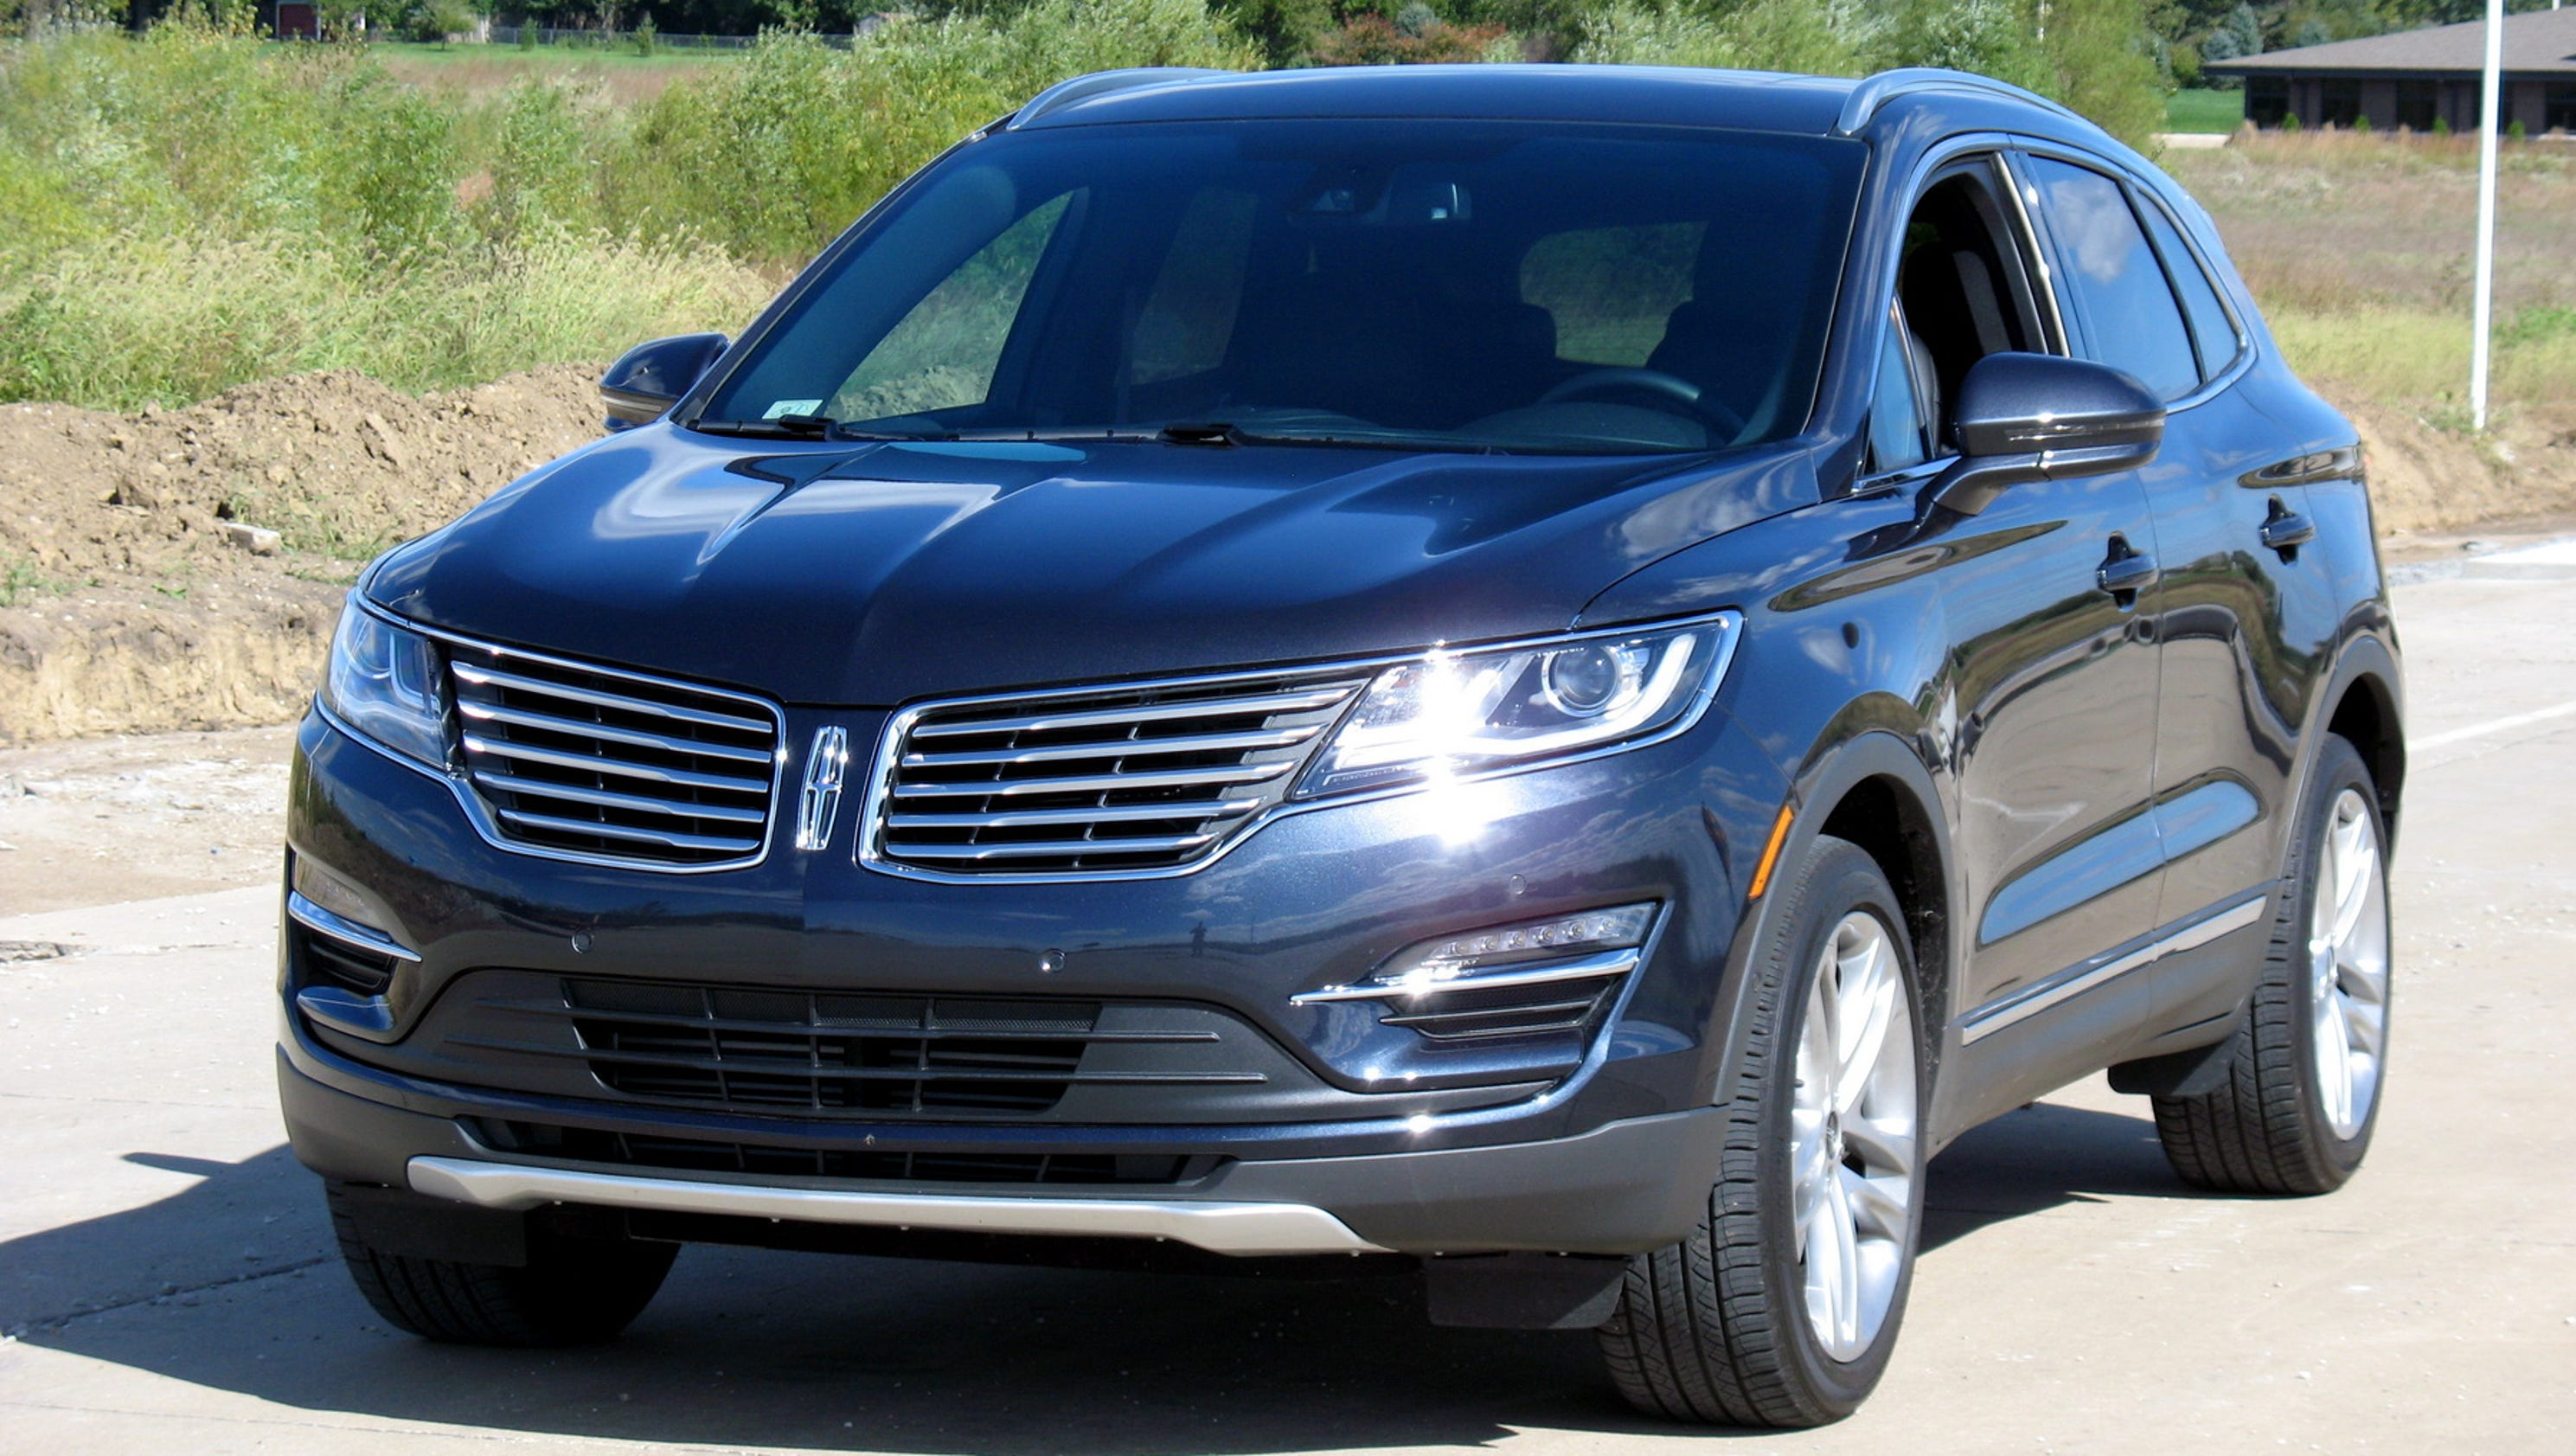 wallpaper pictures specs mkc lincoln information concept